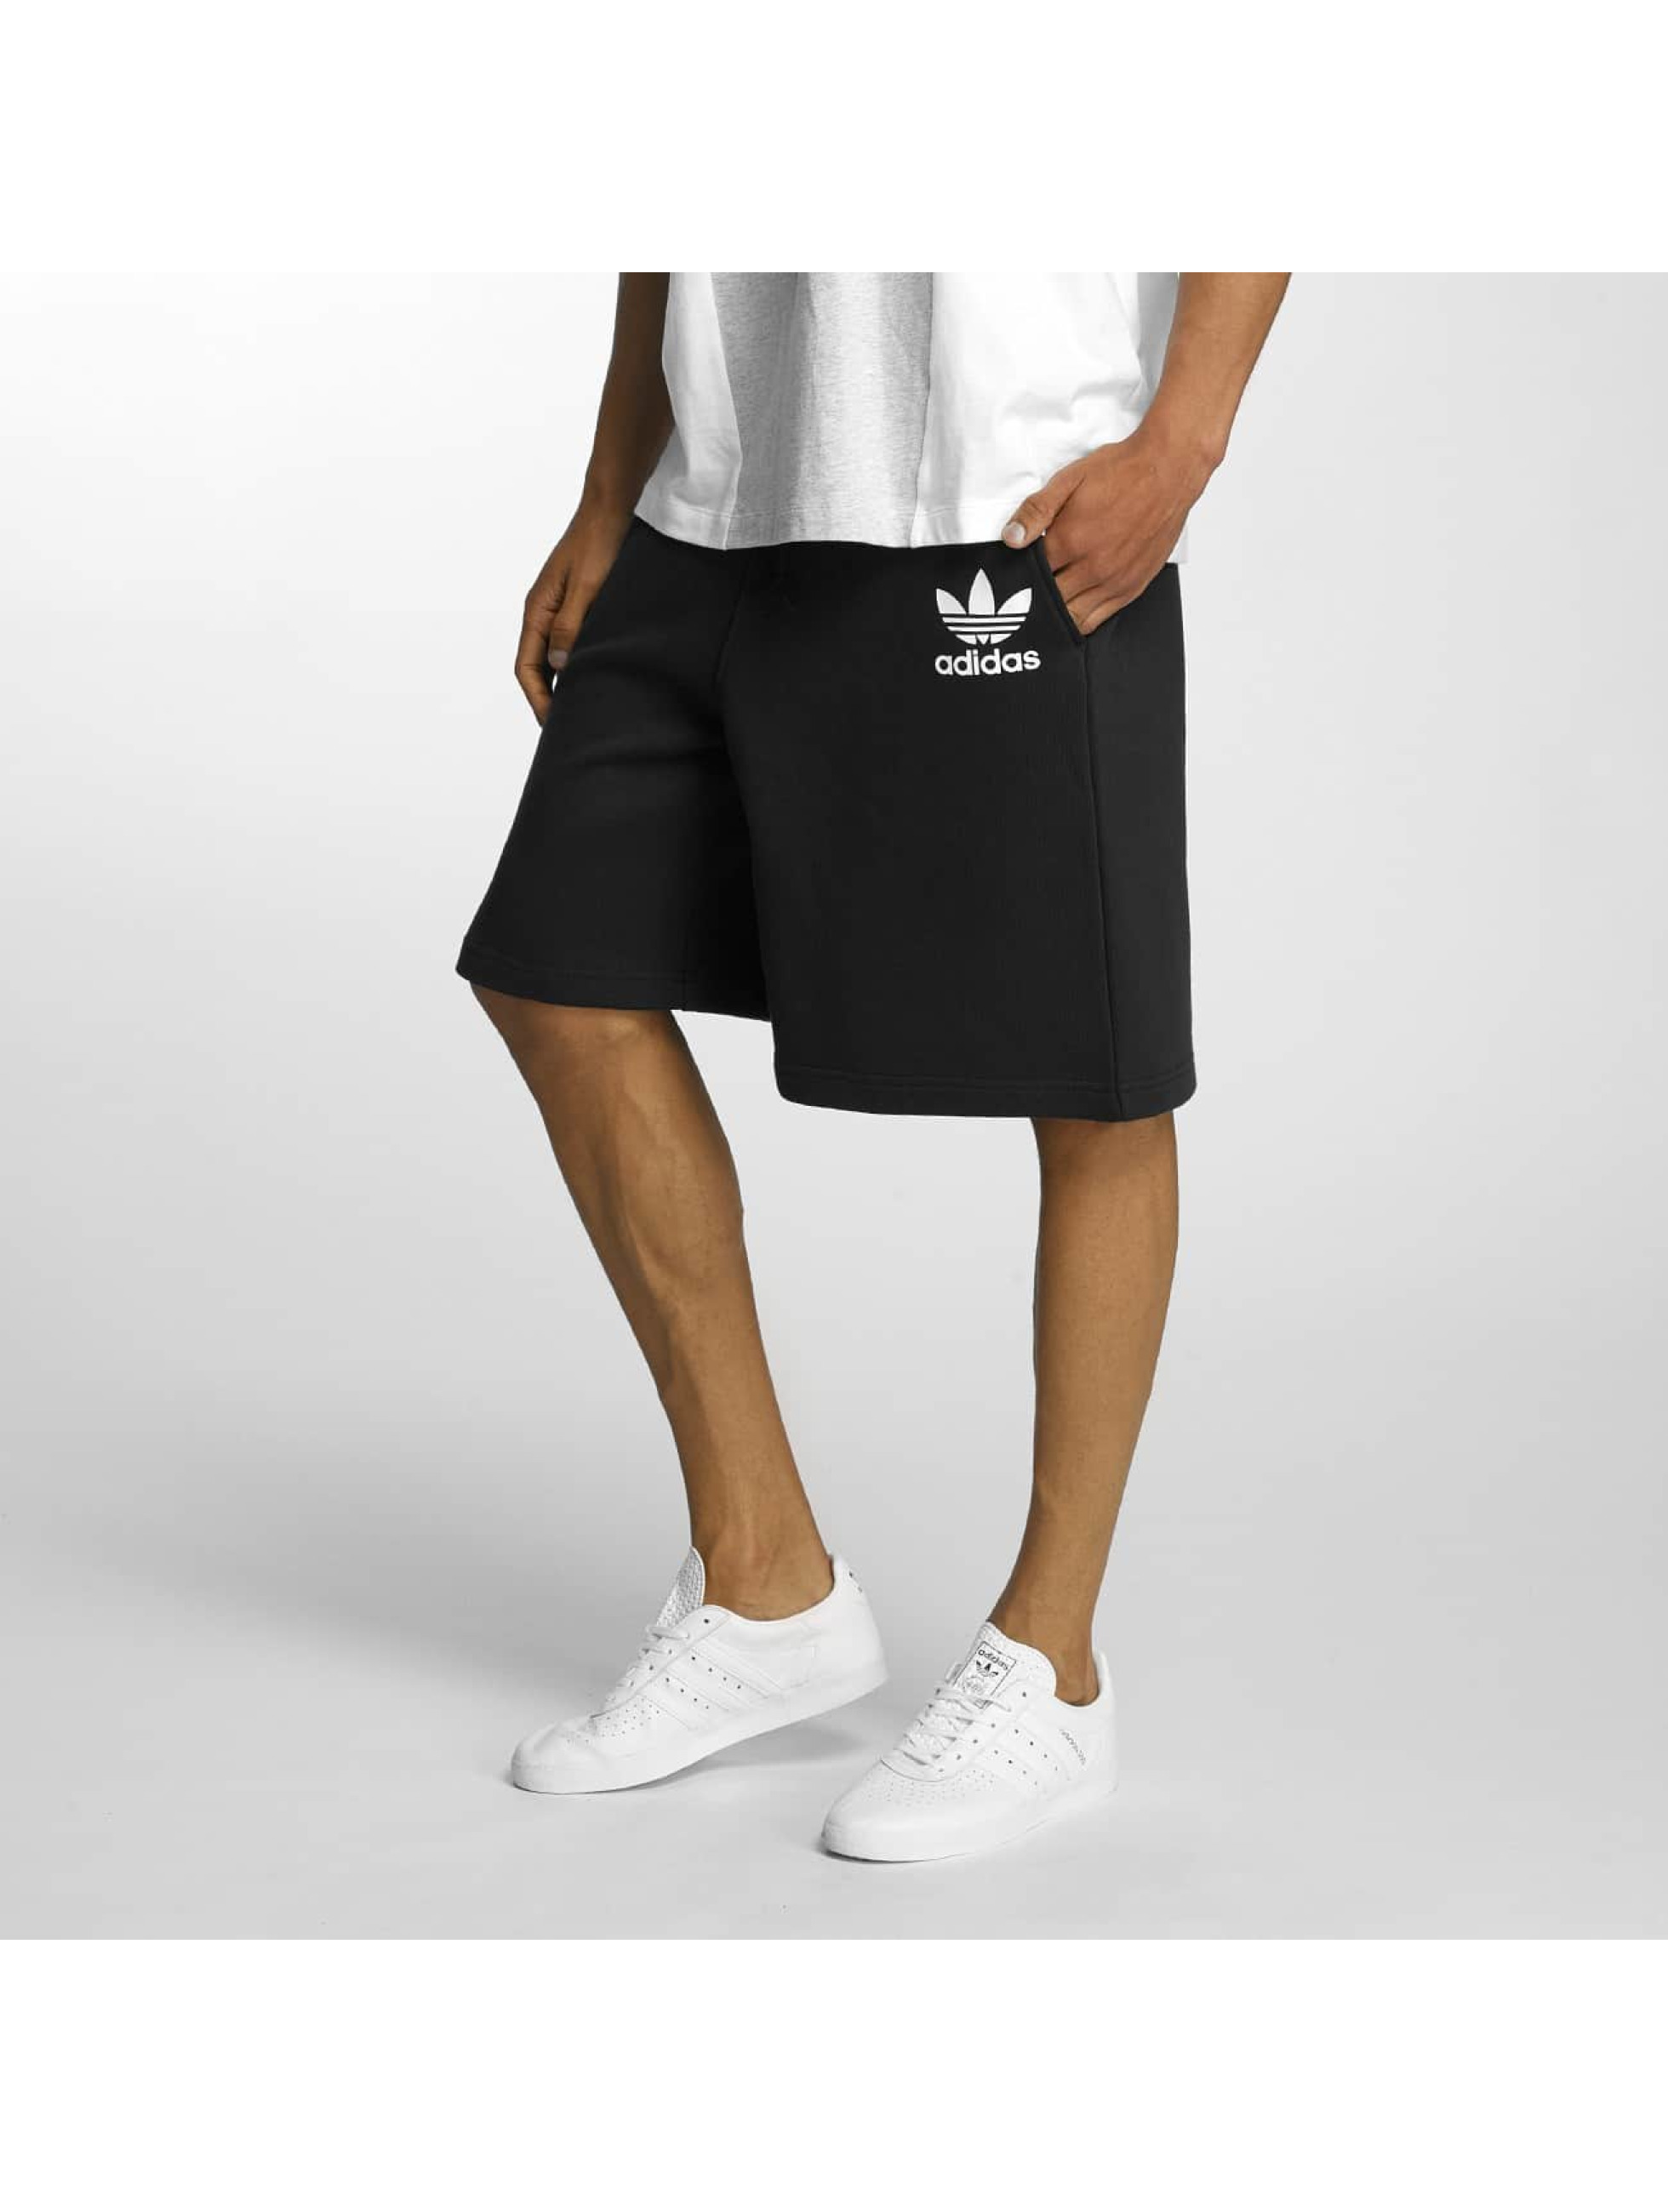 adidas Short ADC F black